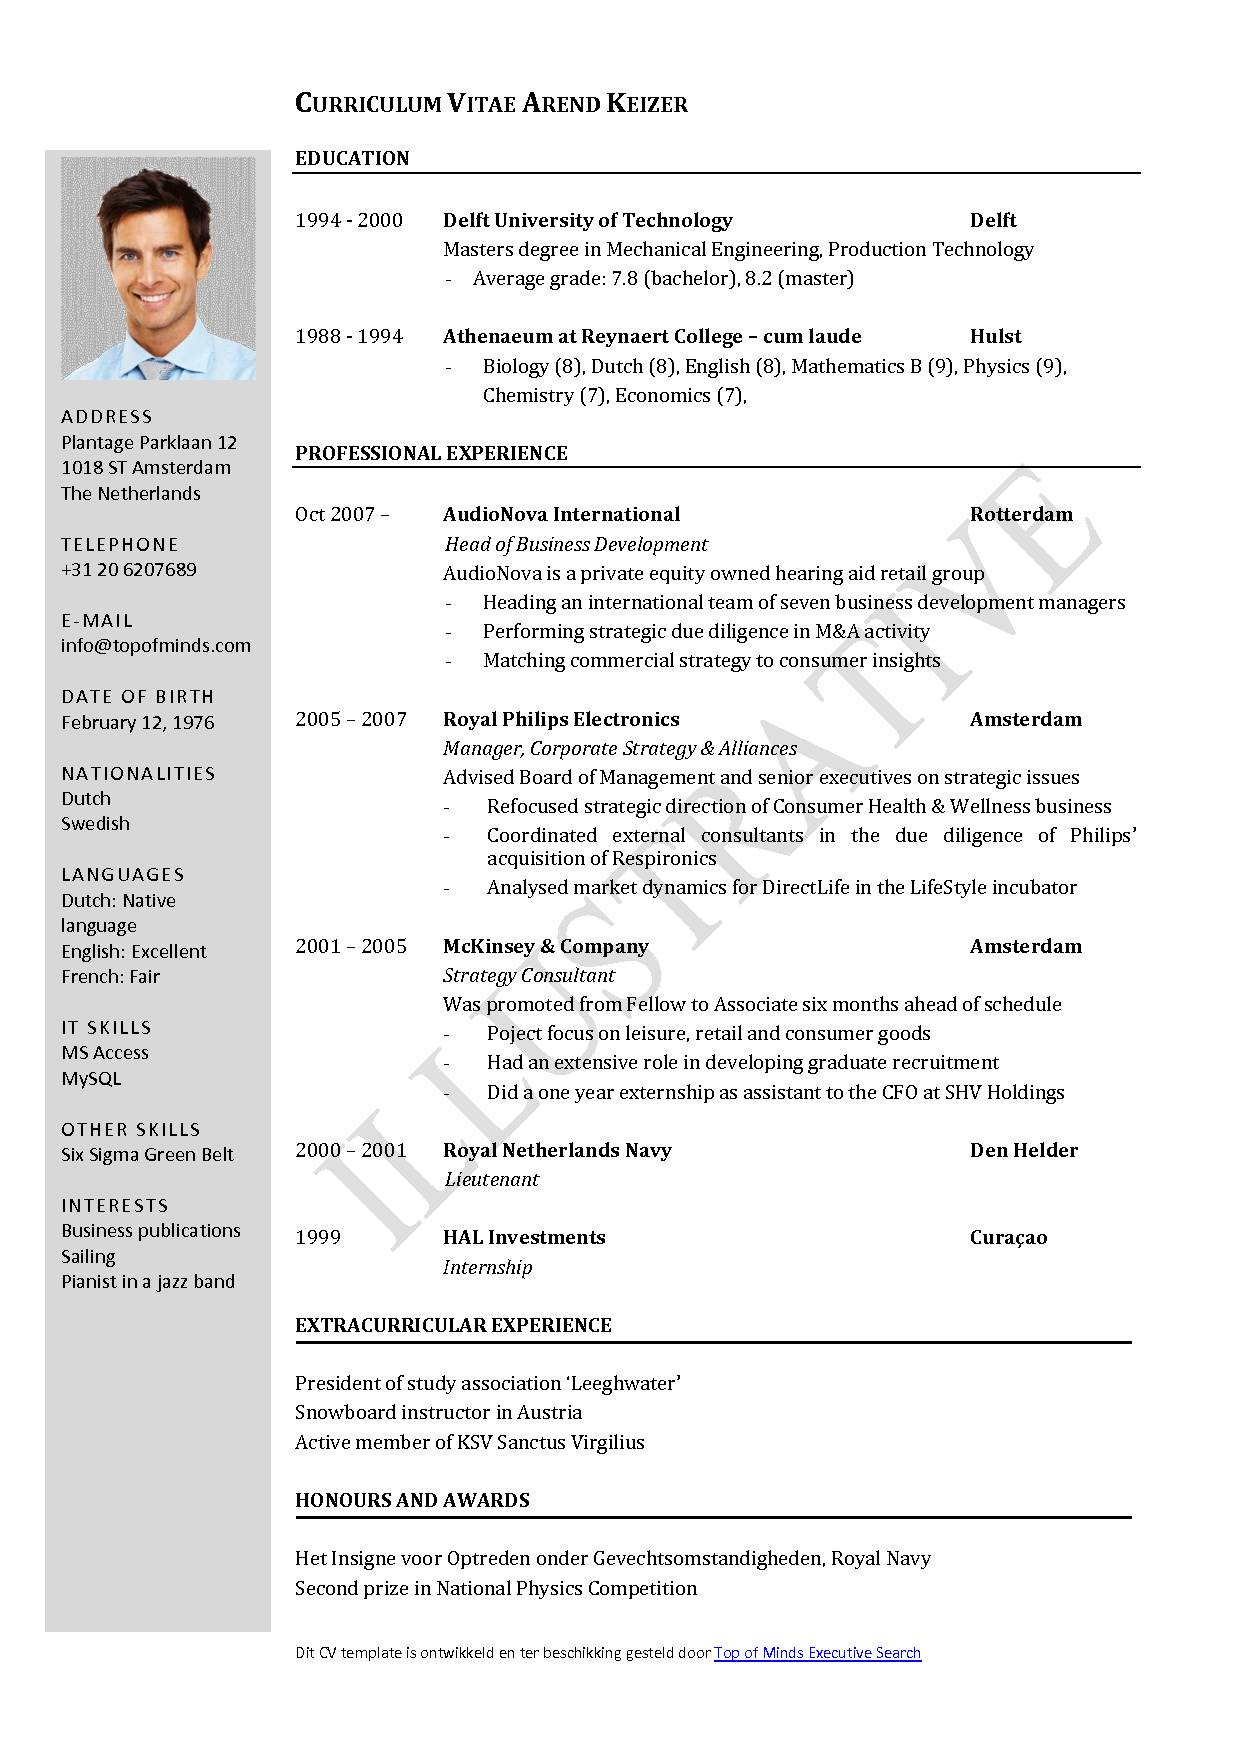 Template For Curriculum Vitae Free Download